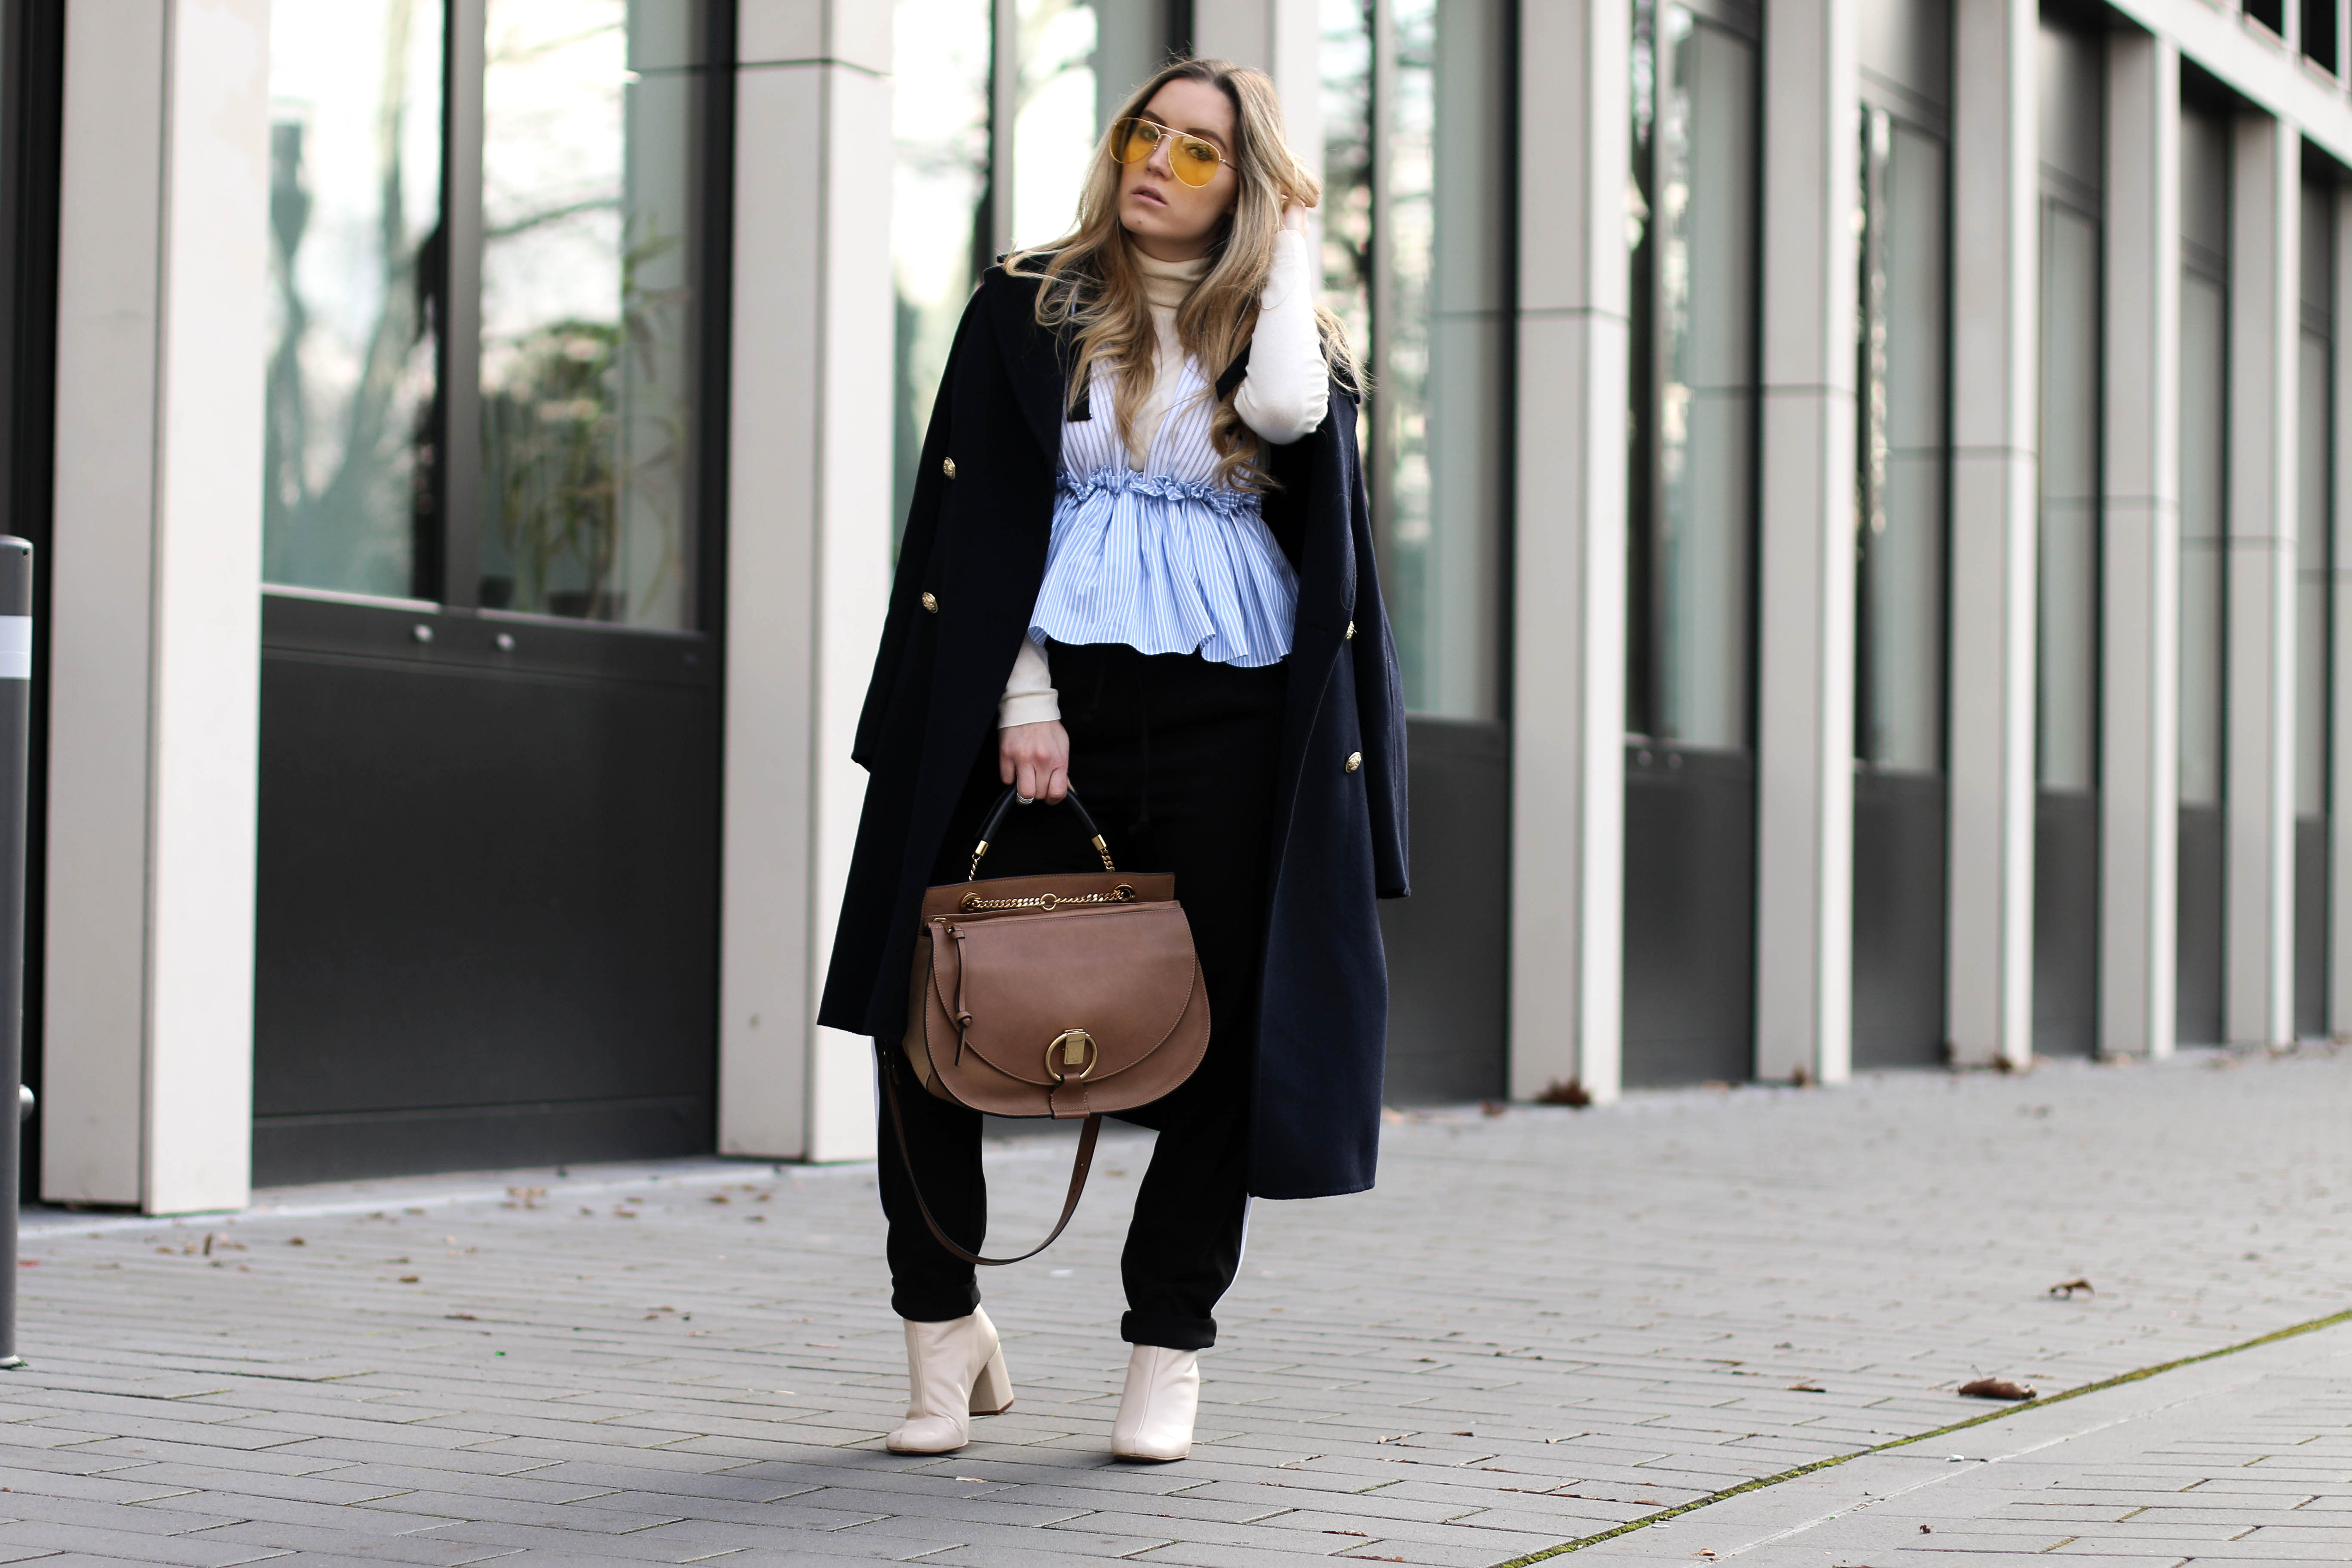 Peplum over Turtleneck Yellow Sunglasses Chloé Goldie Bag